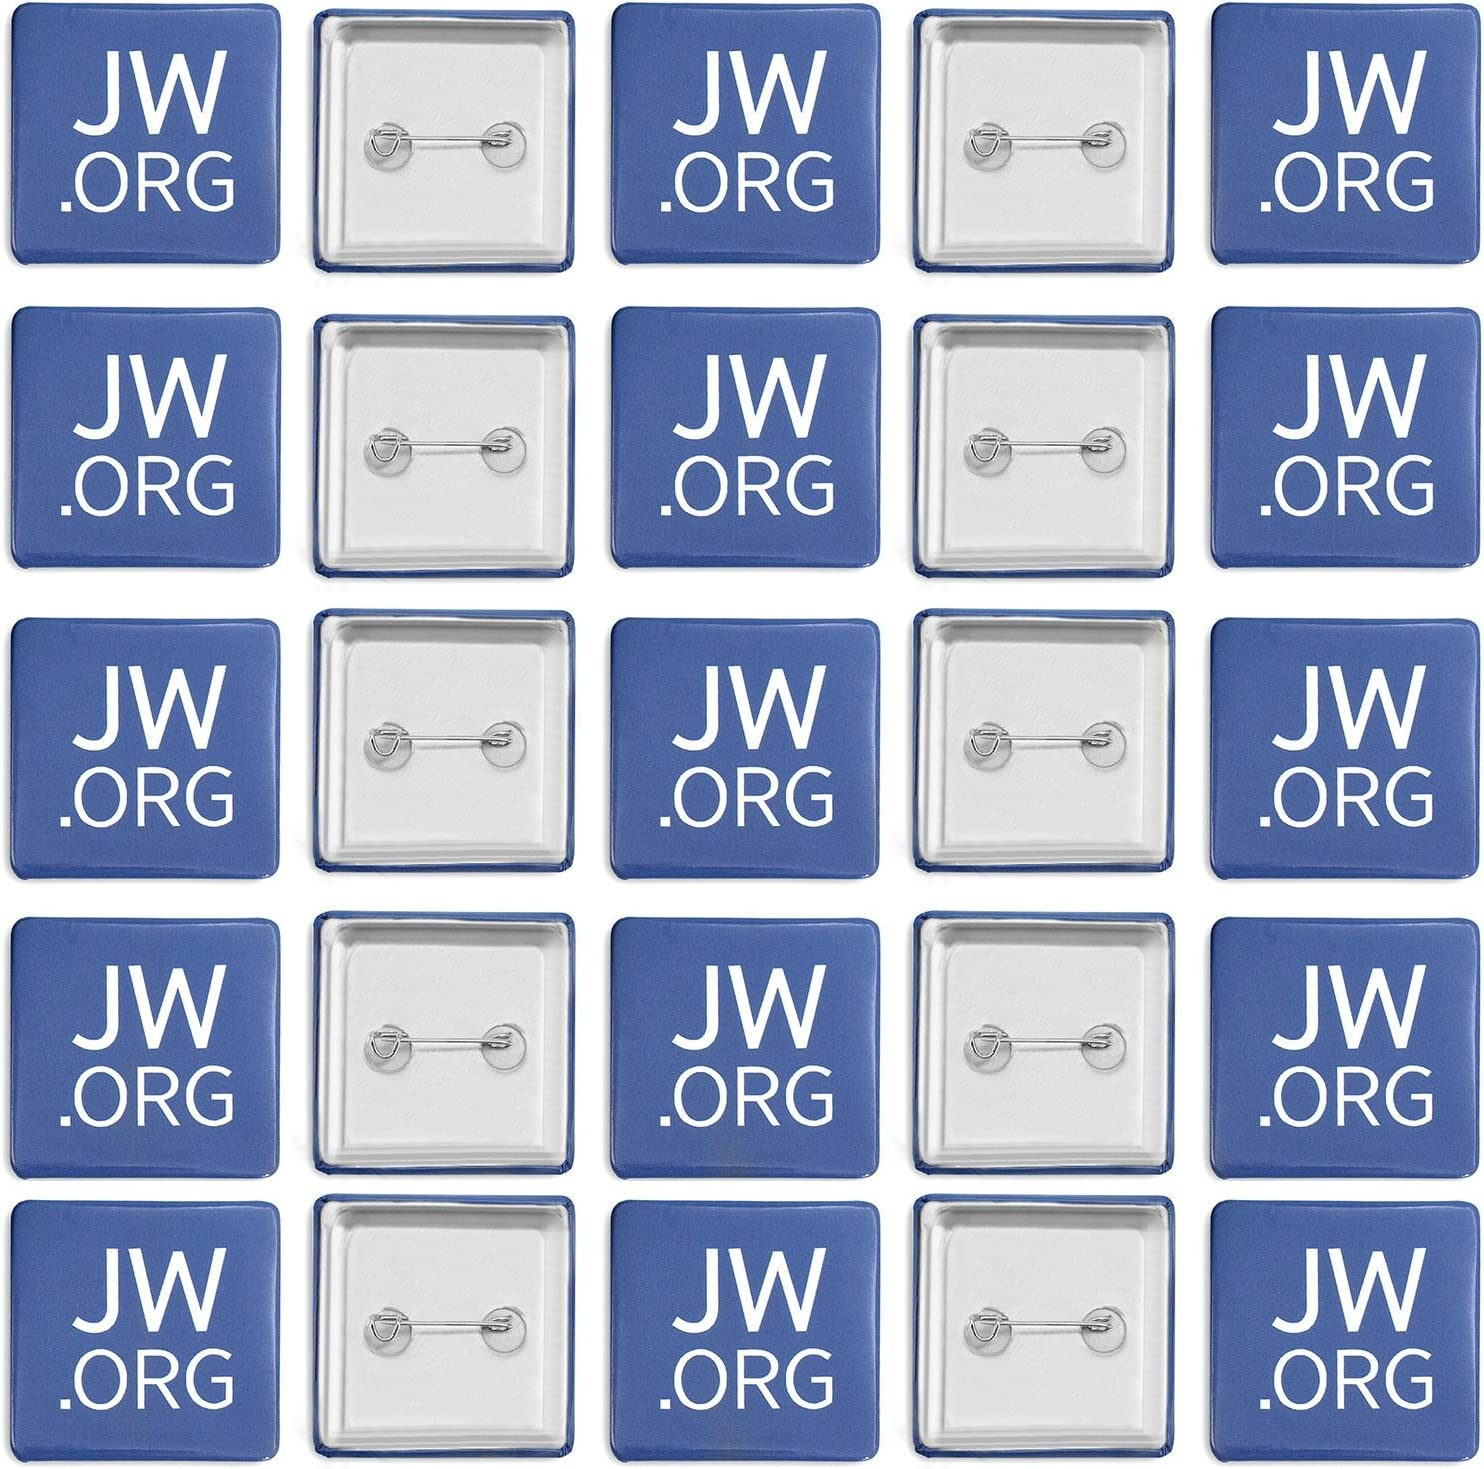 All items in the store Jw.org1.5